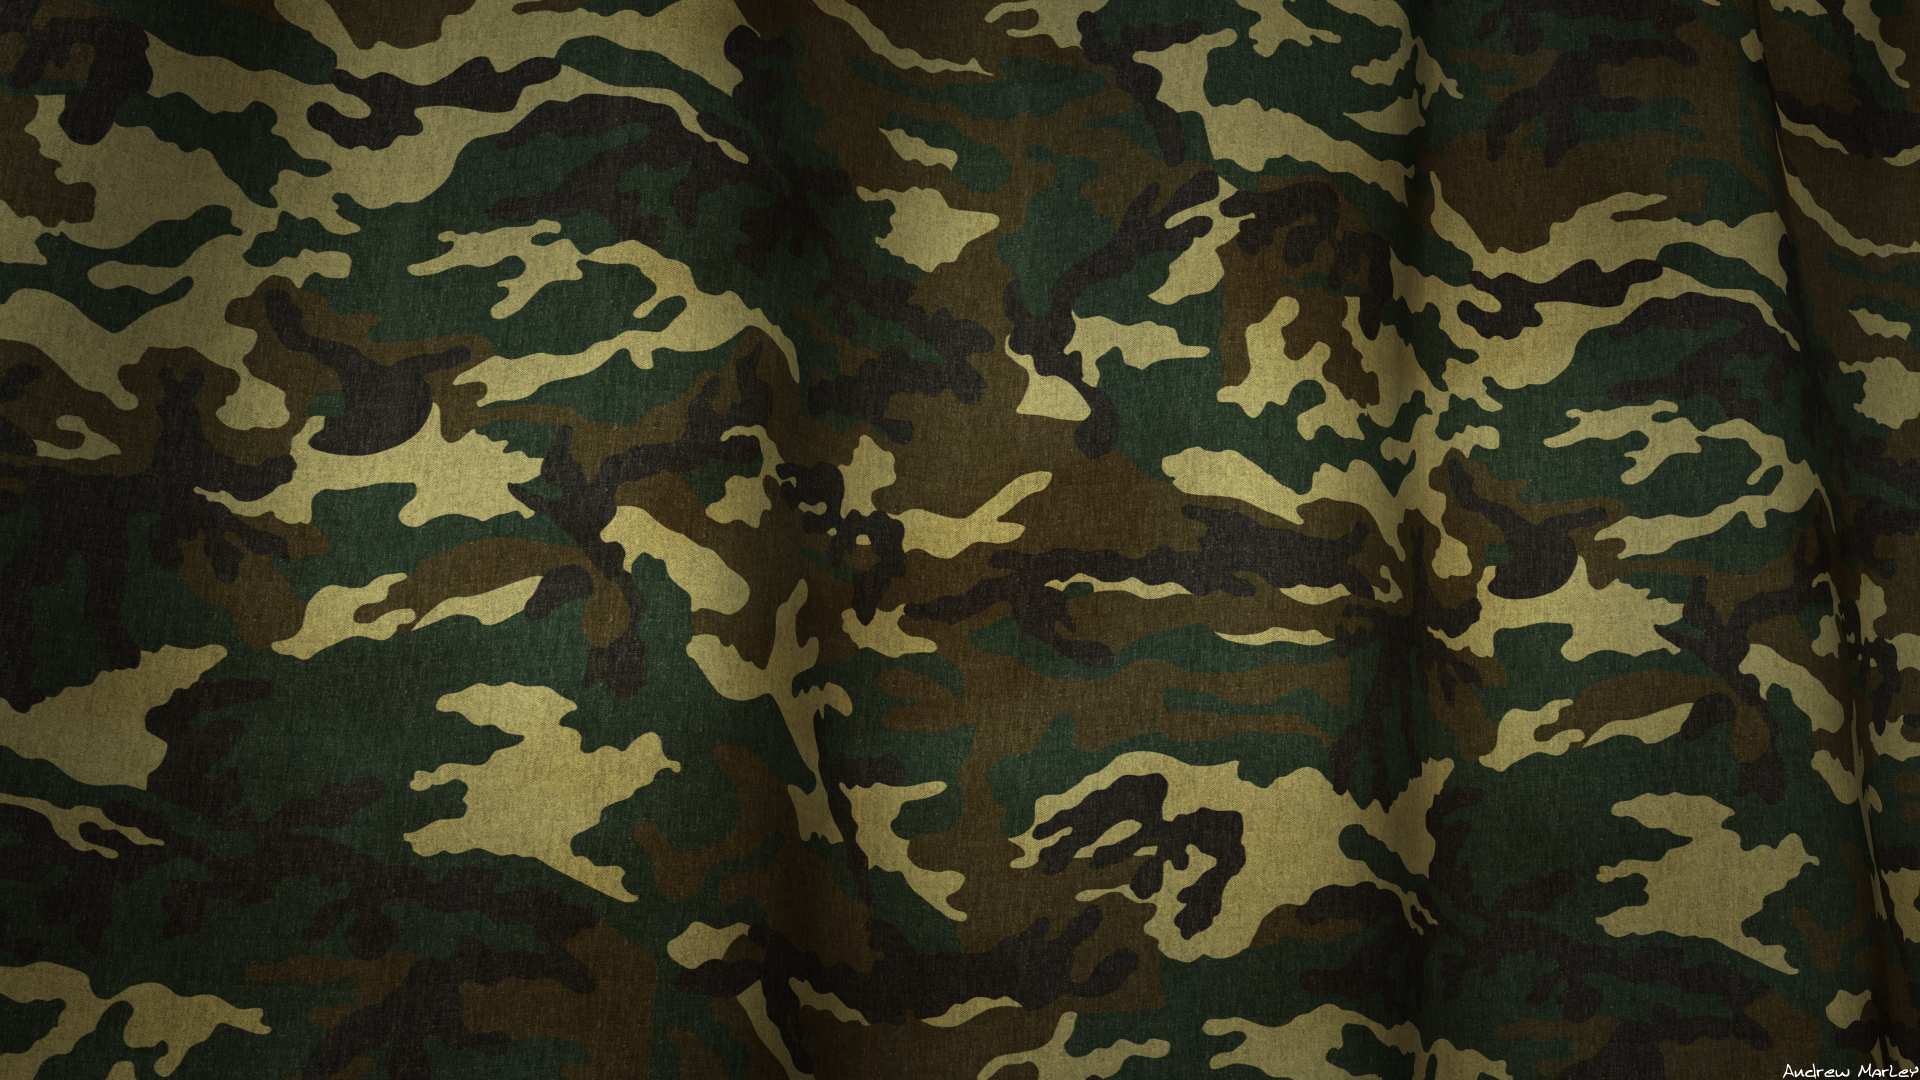 Camouflage Wallpaper and Border at The Camo Shop: Buy these Camouflaged Pattern Wallpapers and Borders here at The Camo Shop. View products like Classic ...